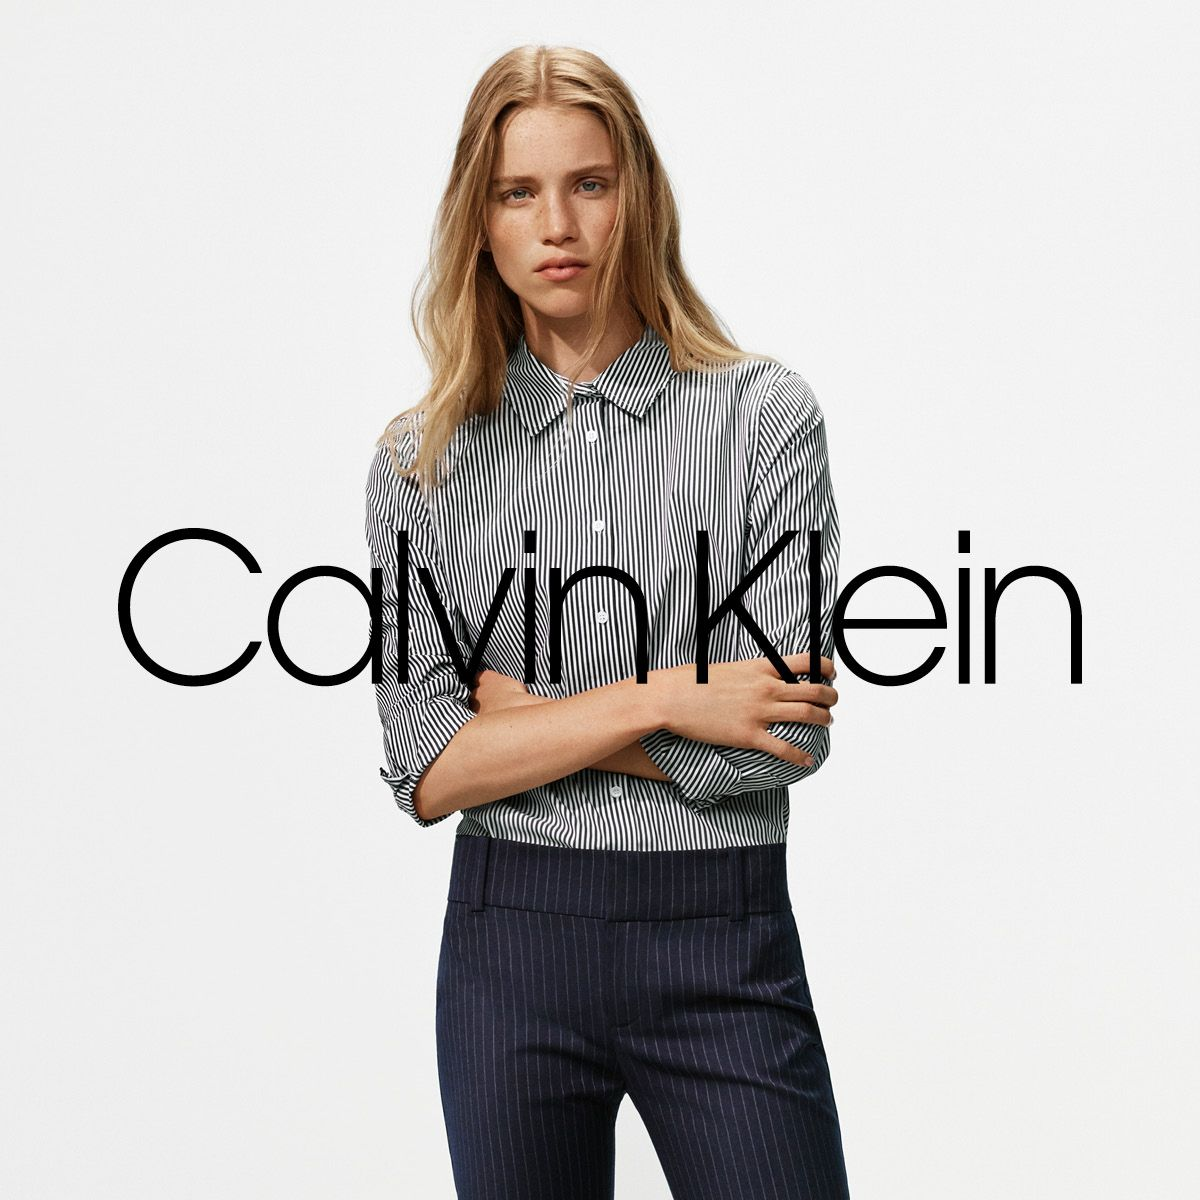 02d5d55b Weekly Promotion at Calvin Klein Outlet! Lake Buena Vista Factory Stores, FREE  store front parking. Valid 10.25.18 – 10.31.18 Entire Store up to 70% off!